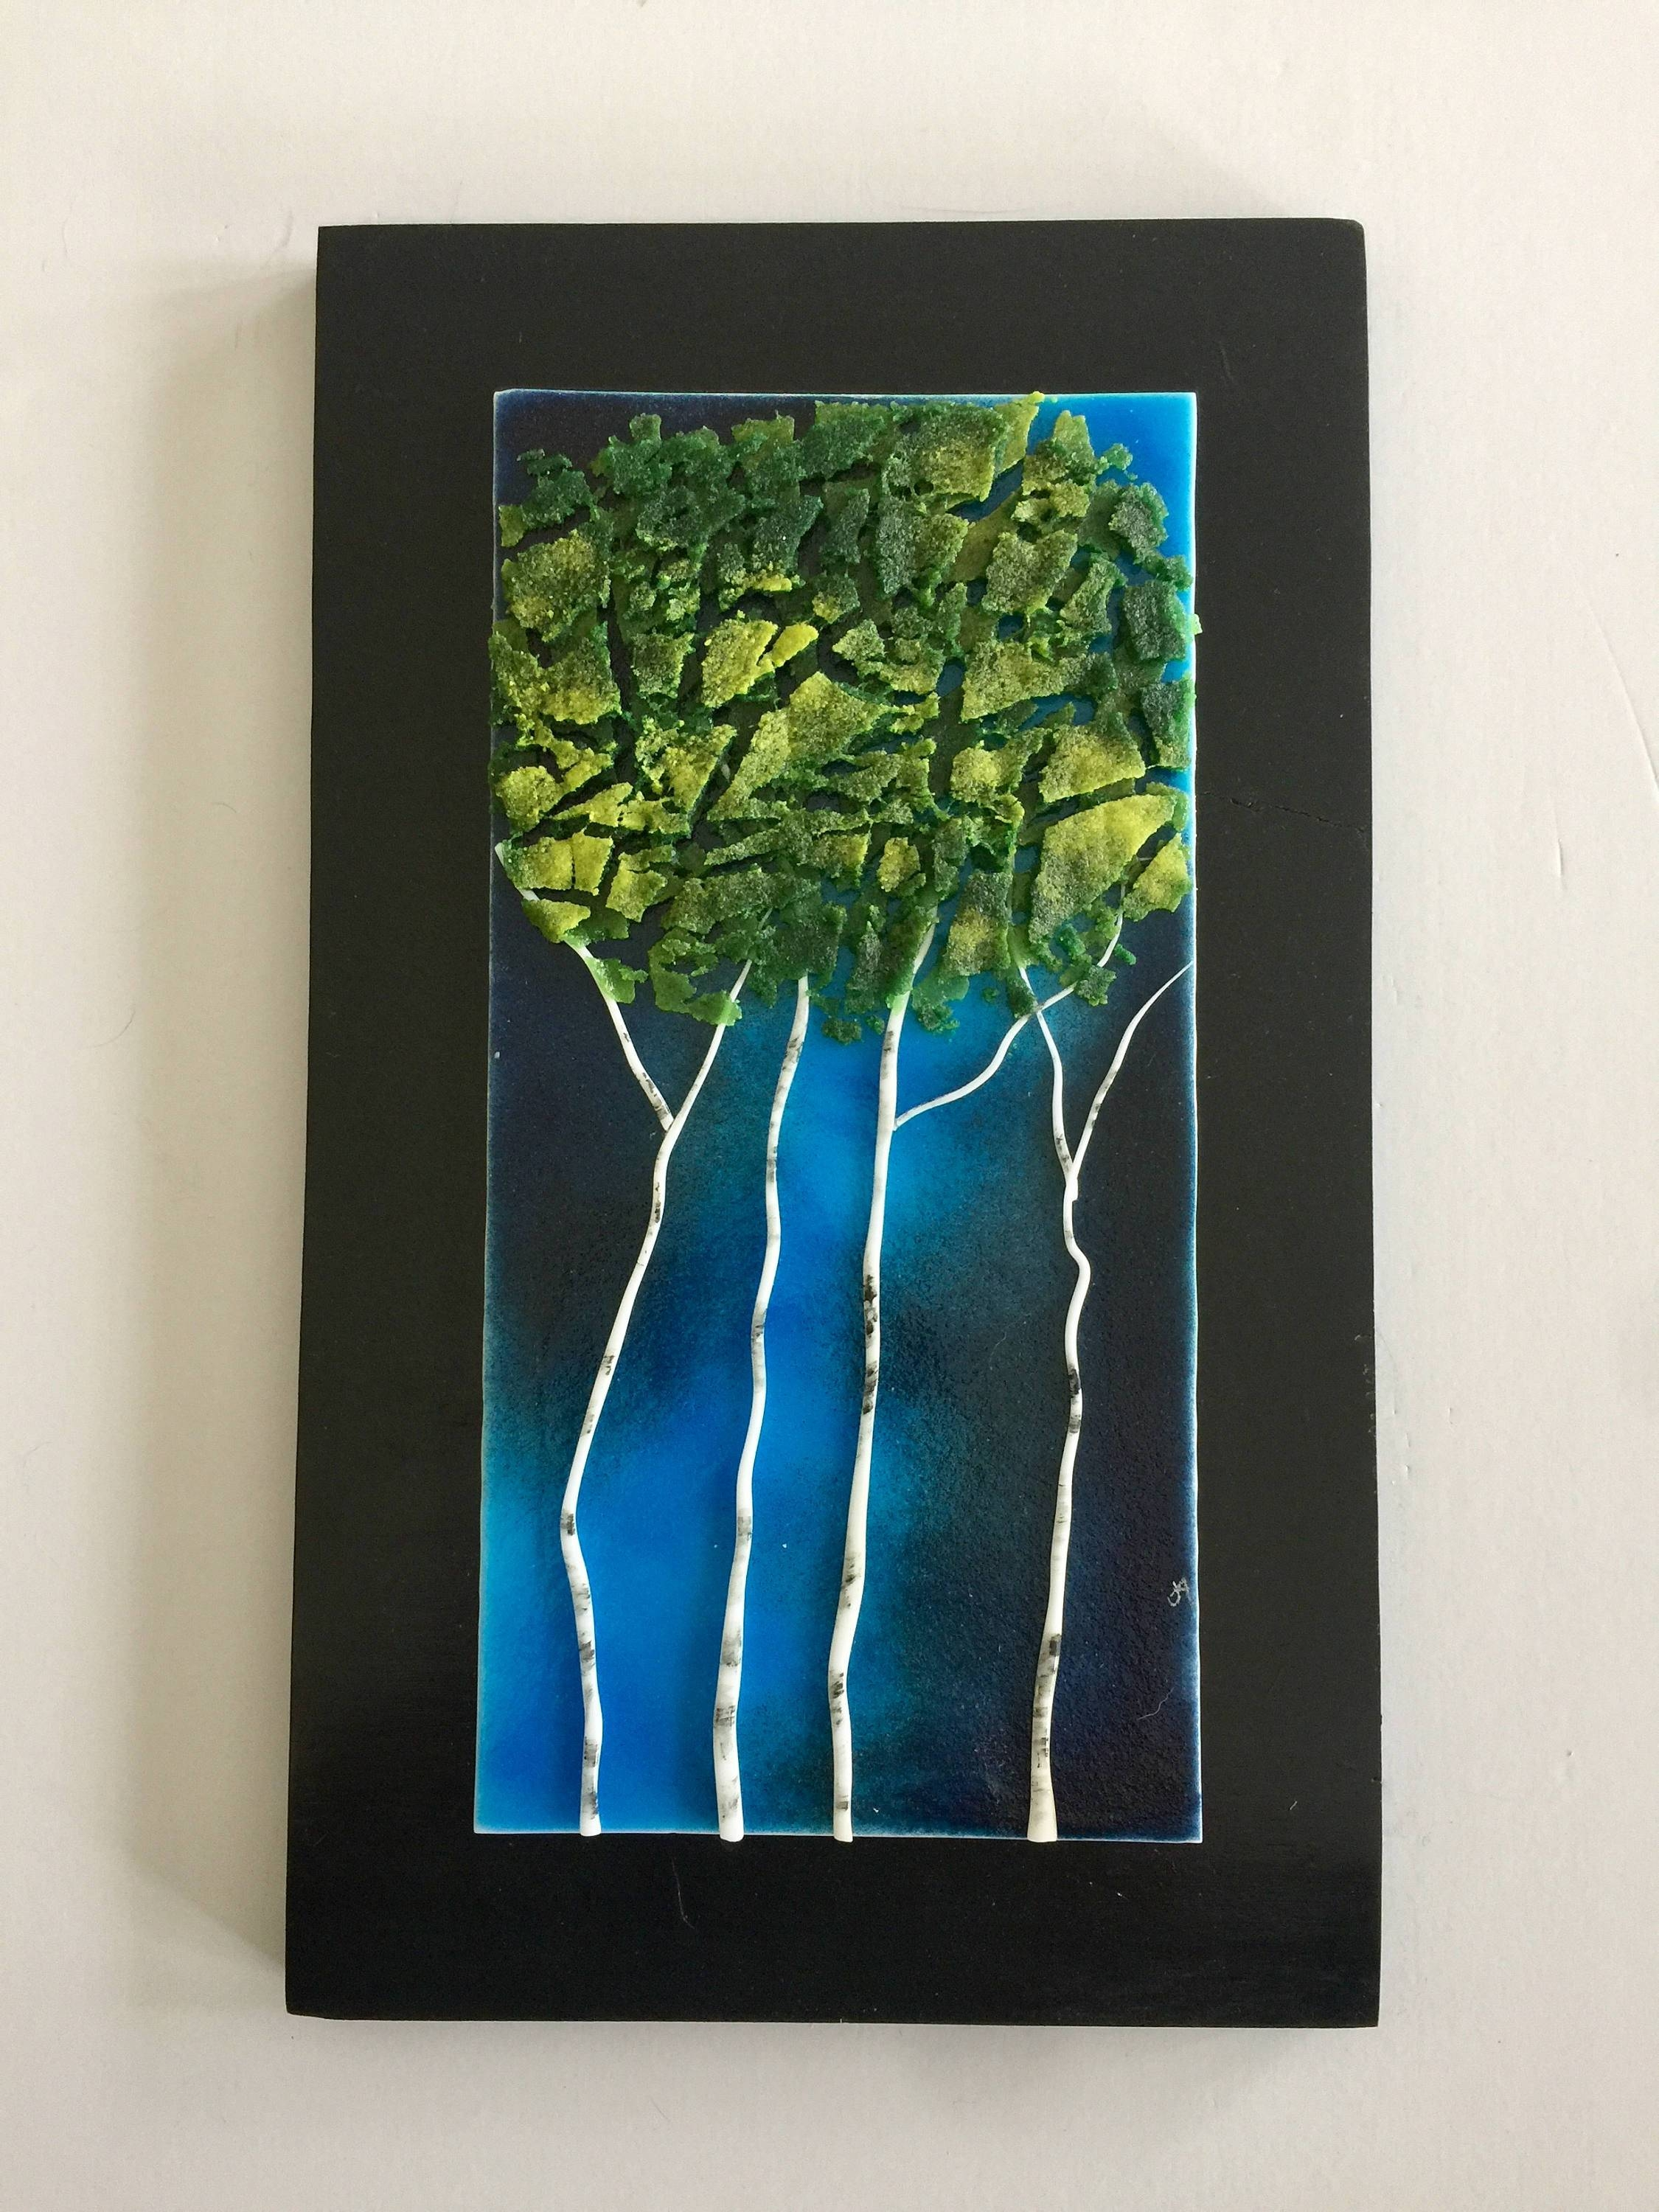 Fused Glass Art, Fused Glass, Handmade Fused Glass,fused Glass Regarding Newest Fused Glass Wall Art (View 11 of 25)